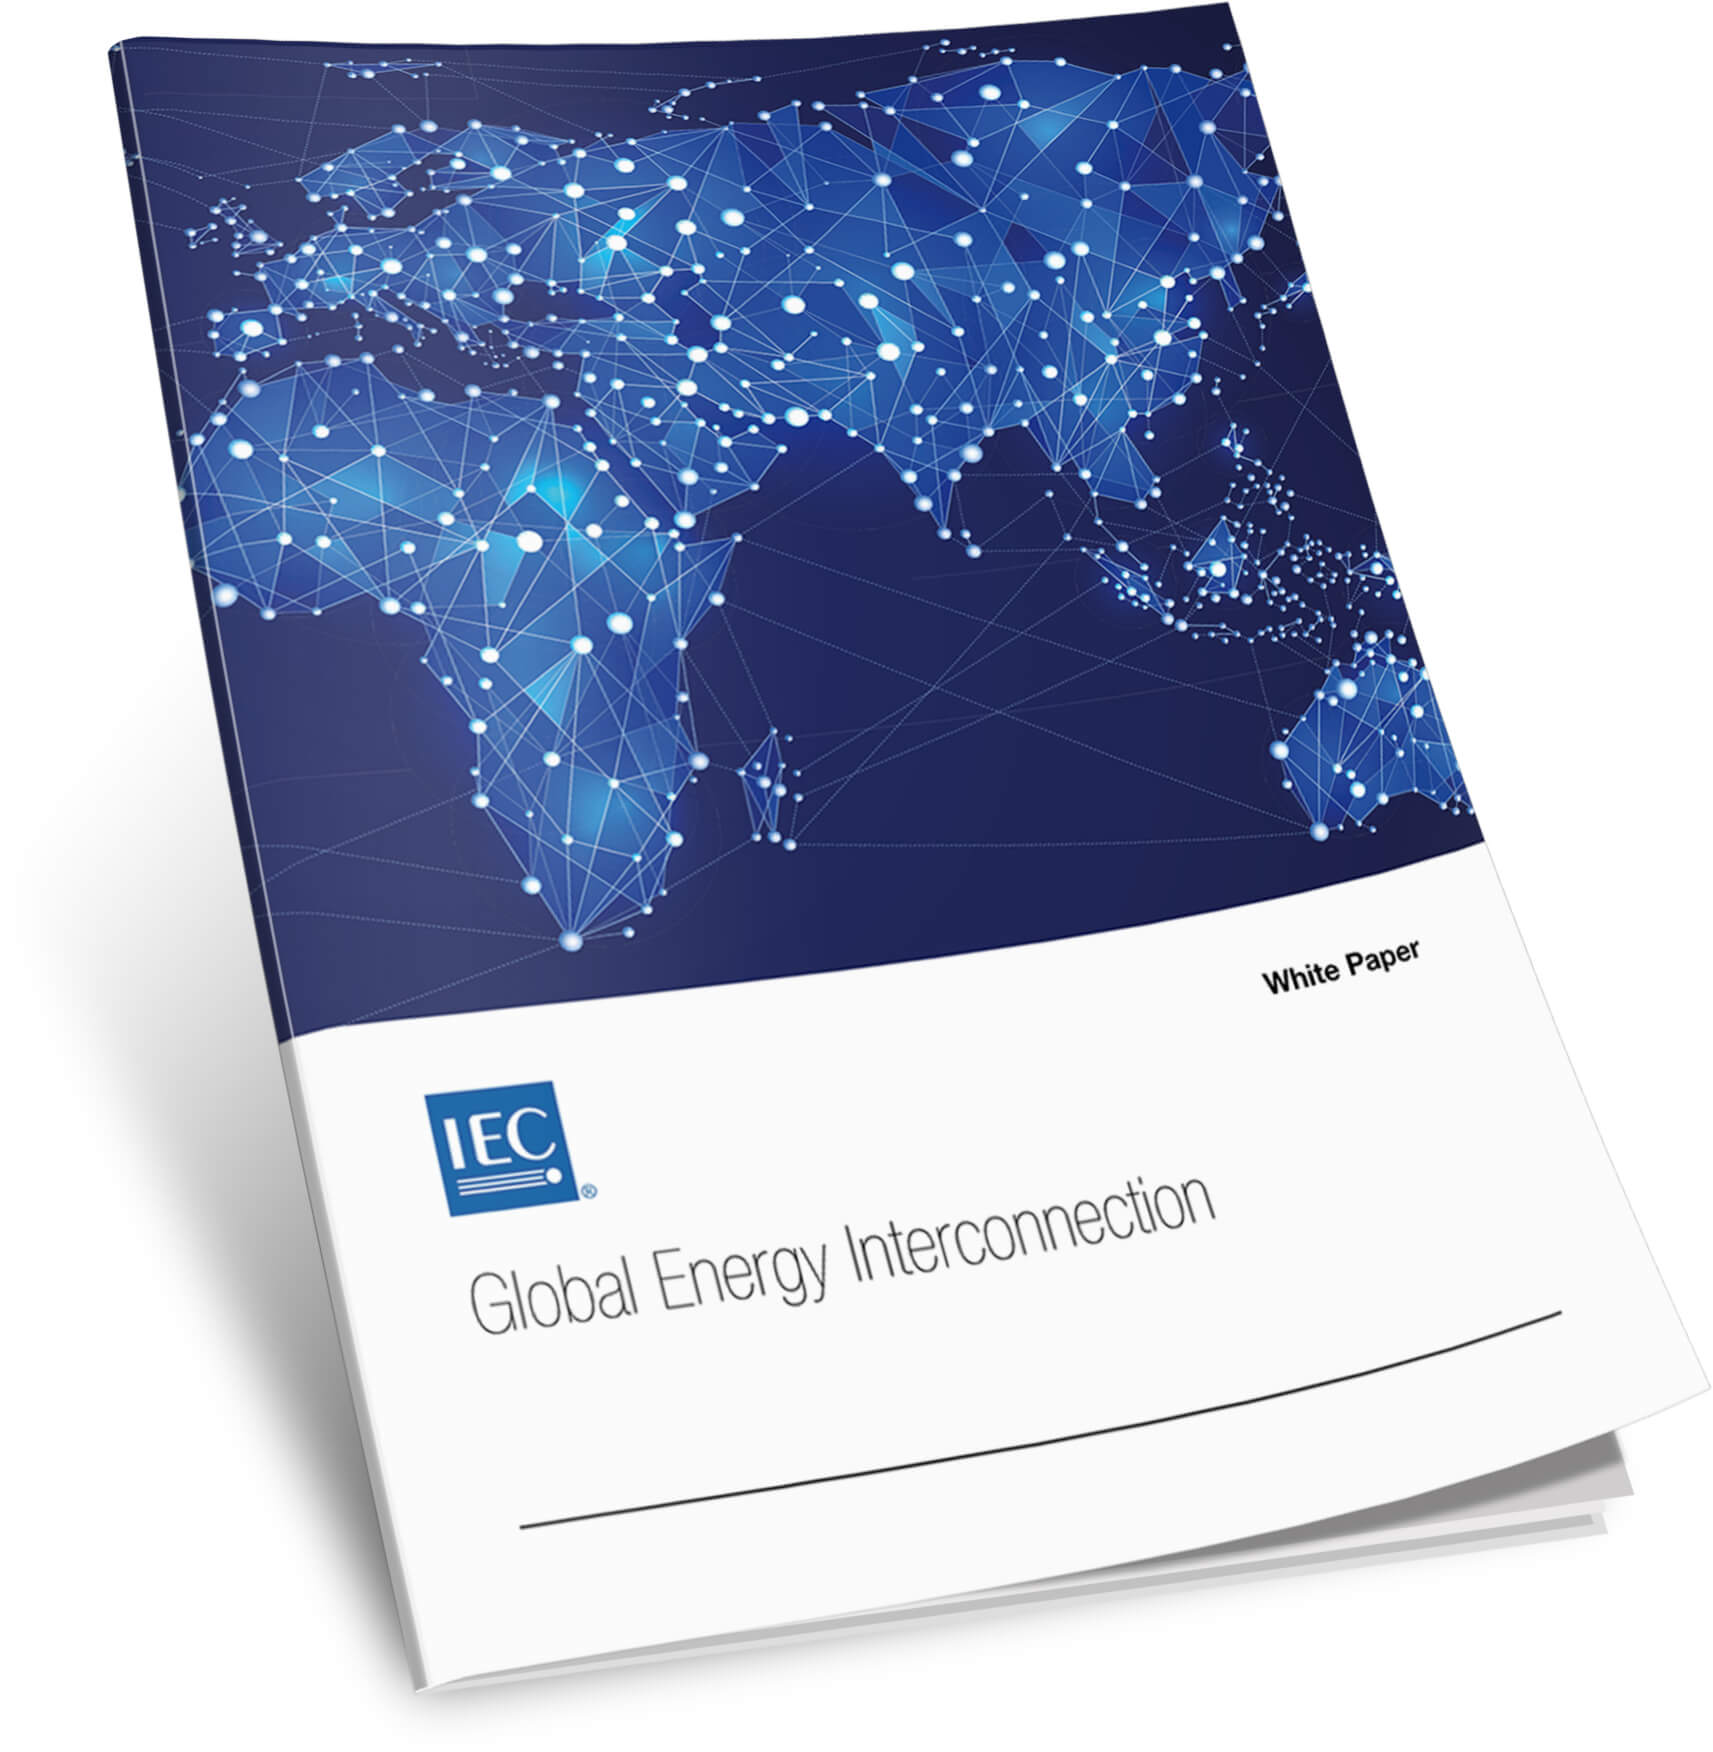 New Iec White Paper On Global Energy Interconnection Published